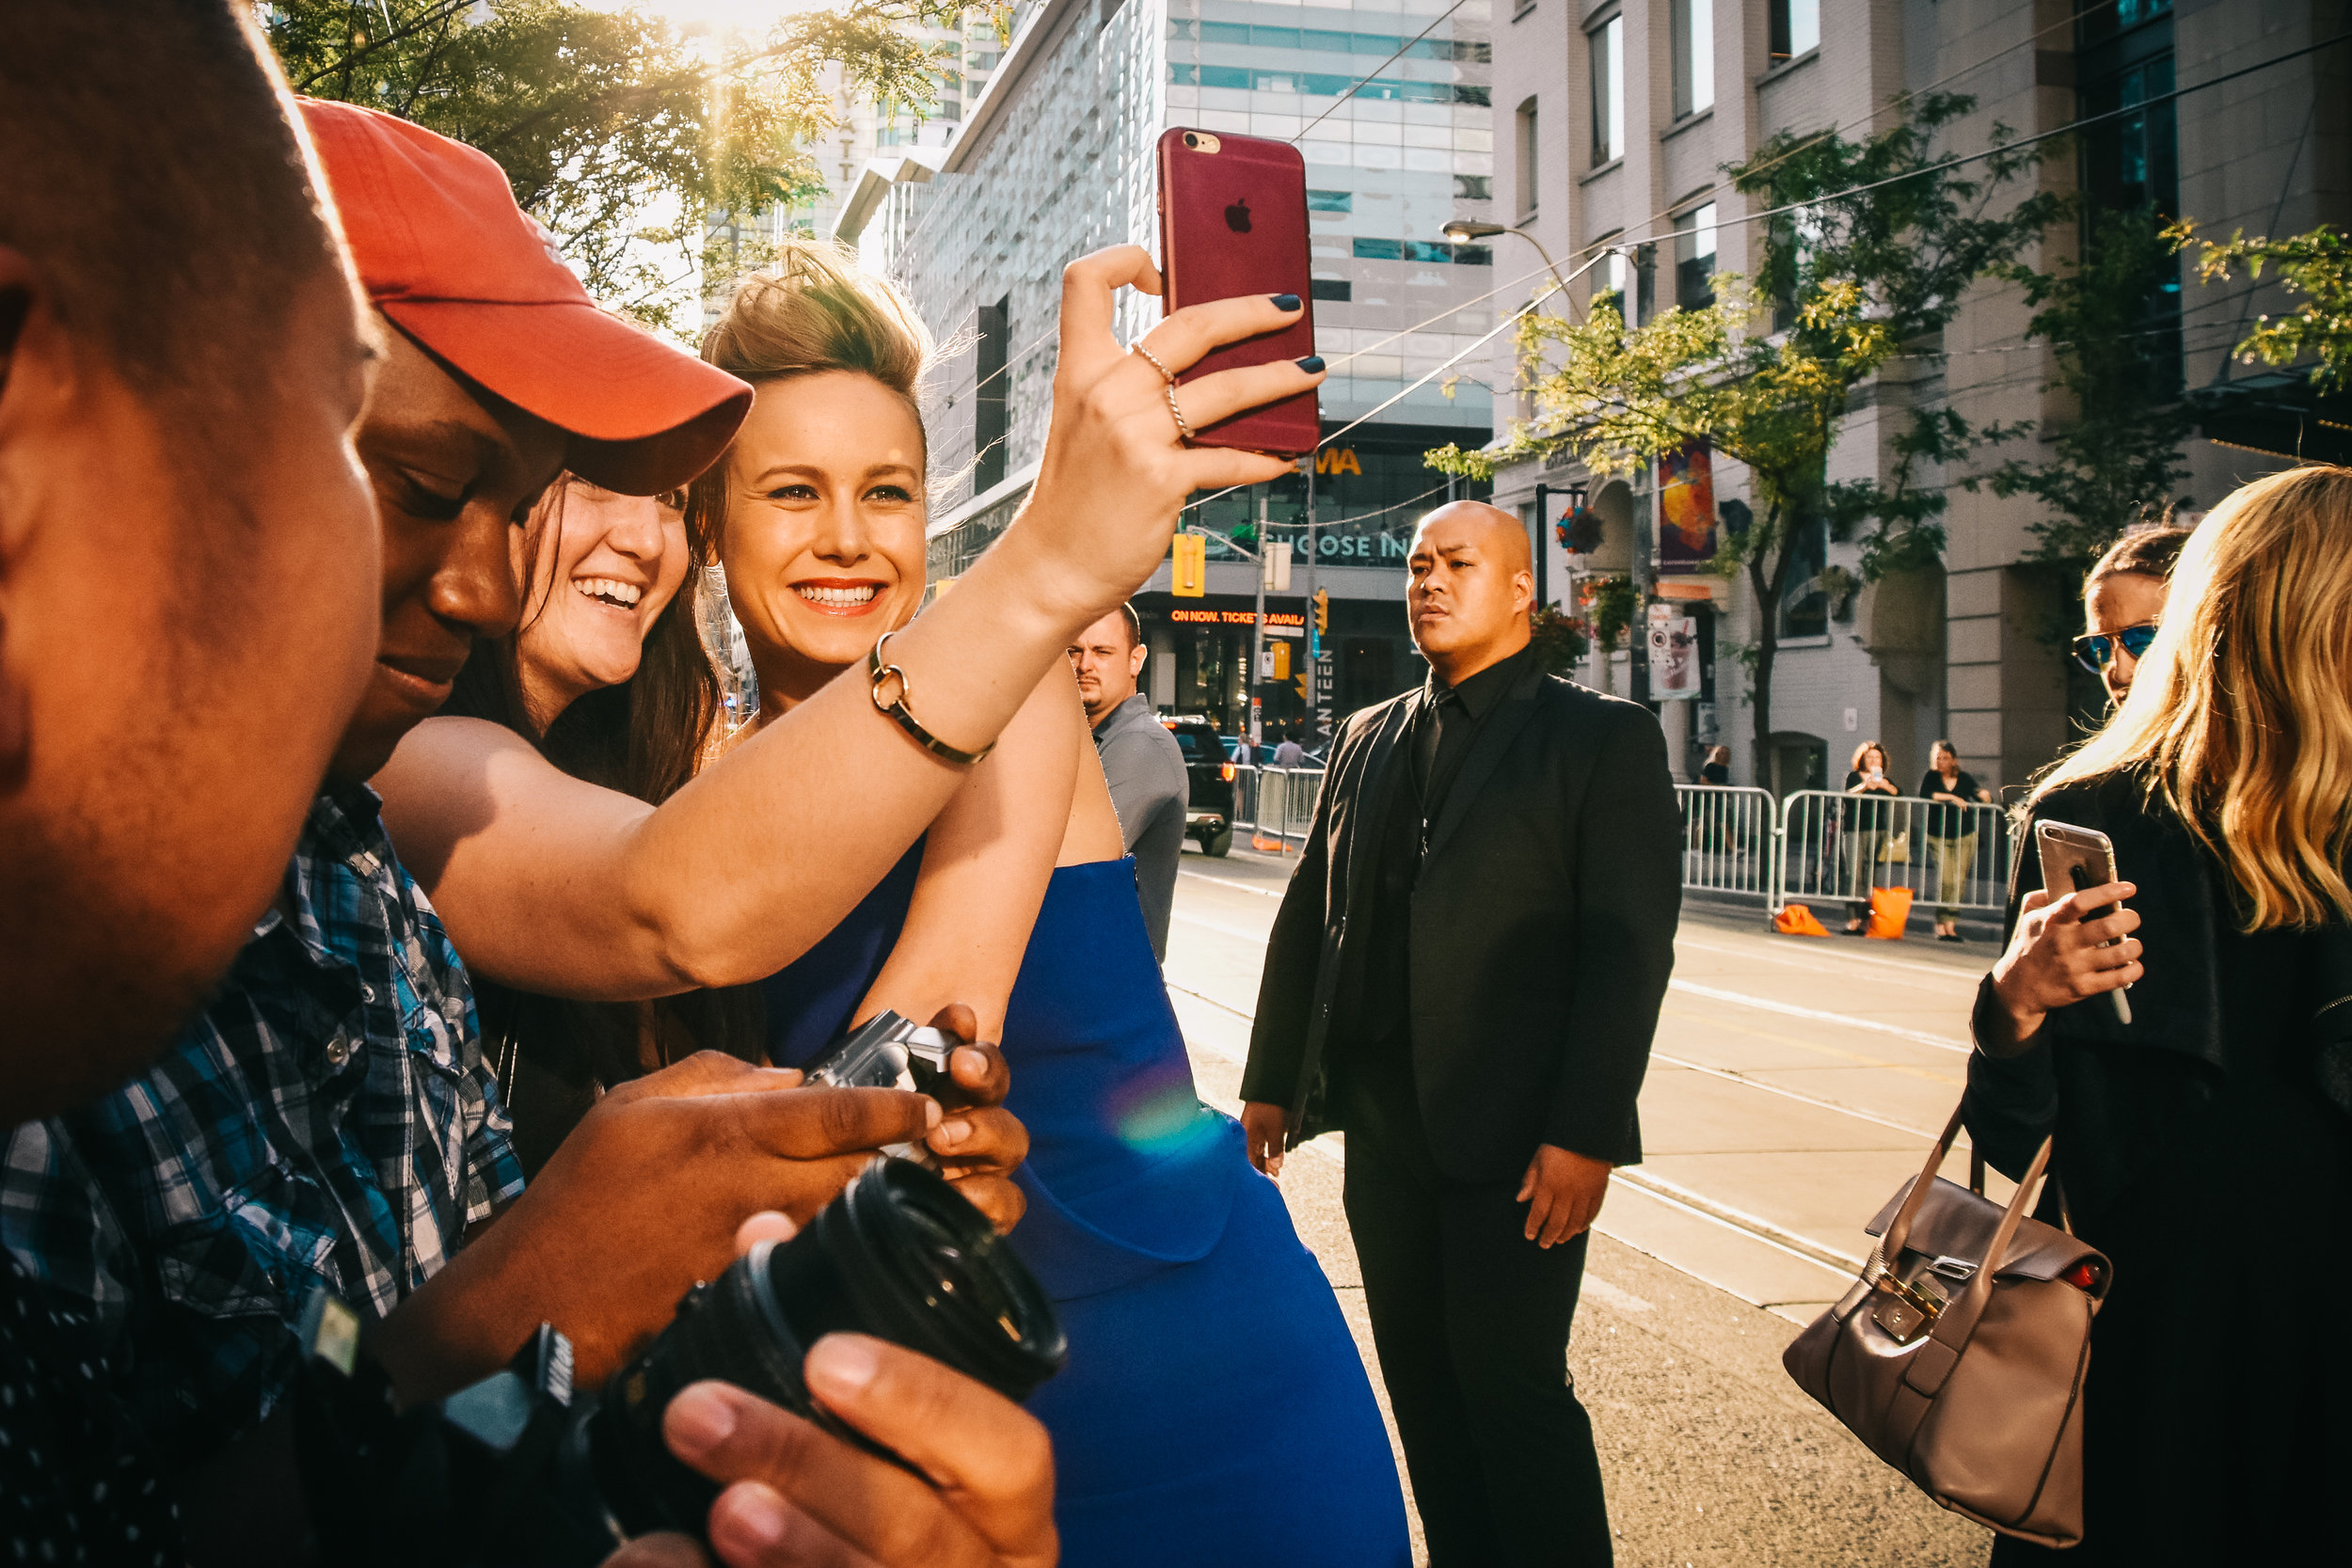 The lovely and kind Brie Larson poses with fans for selfies prior to the screening of the Oscar-winning film  Room .